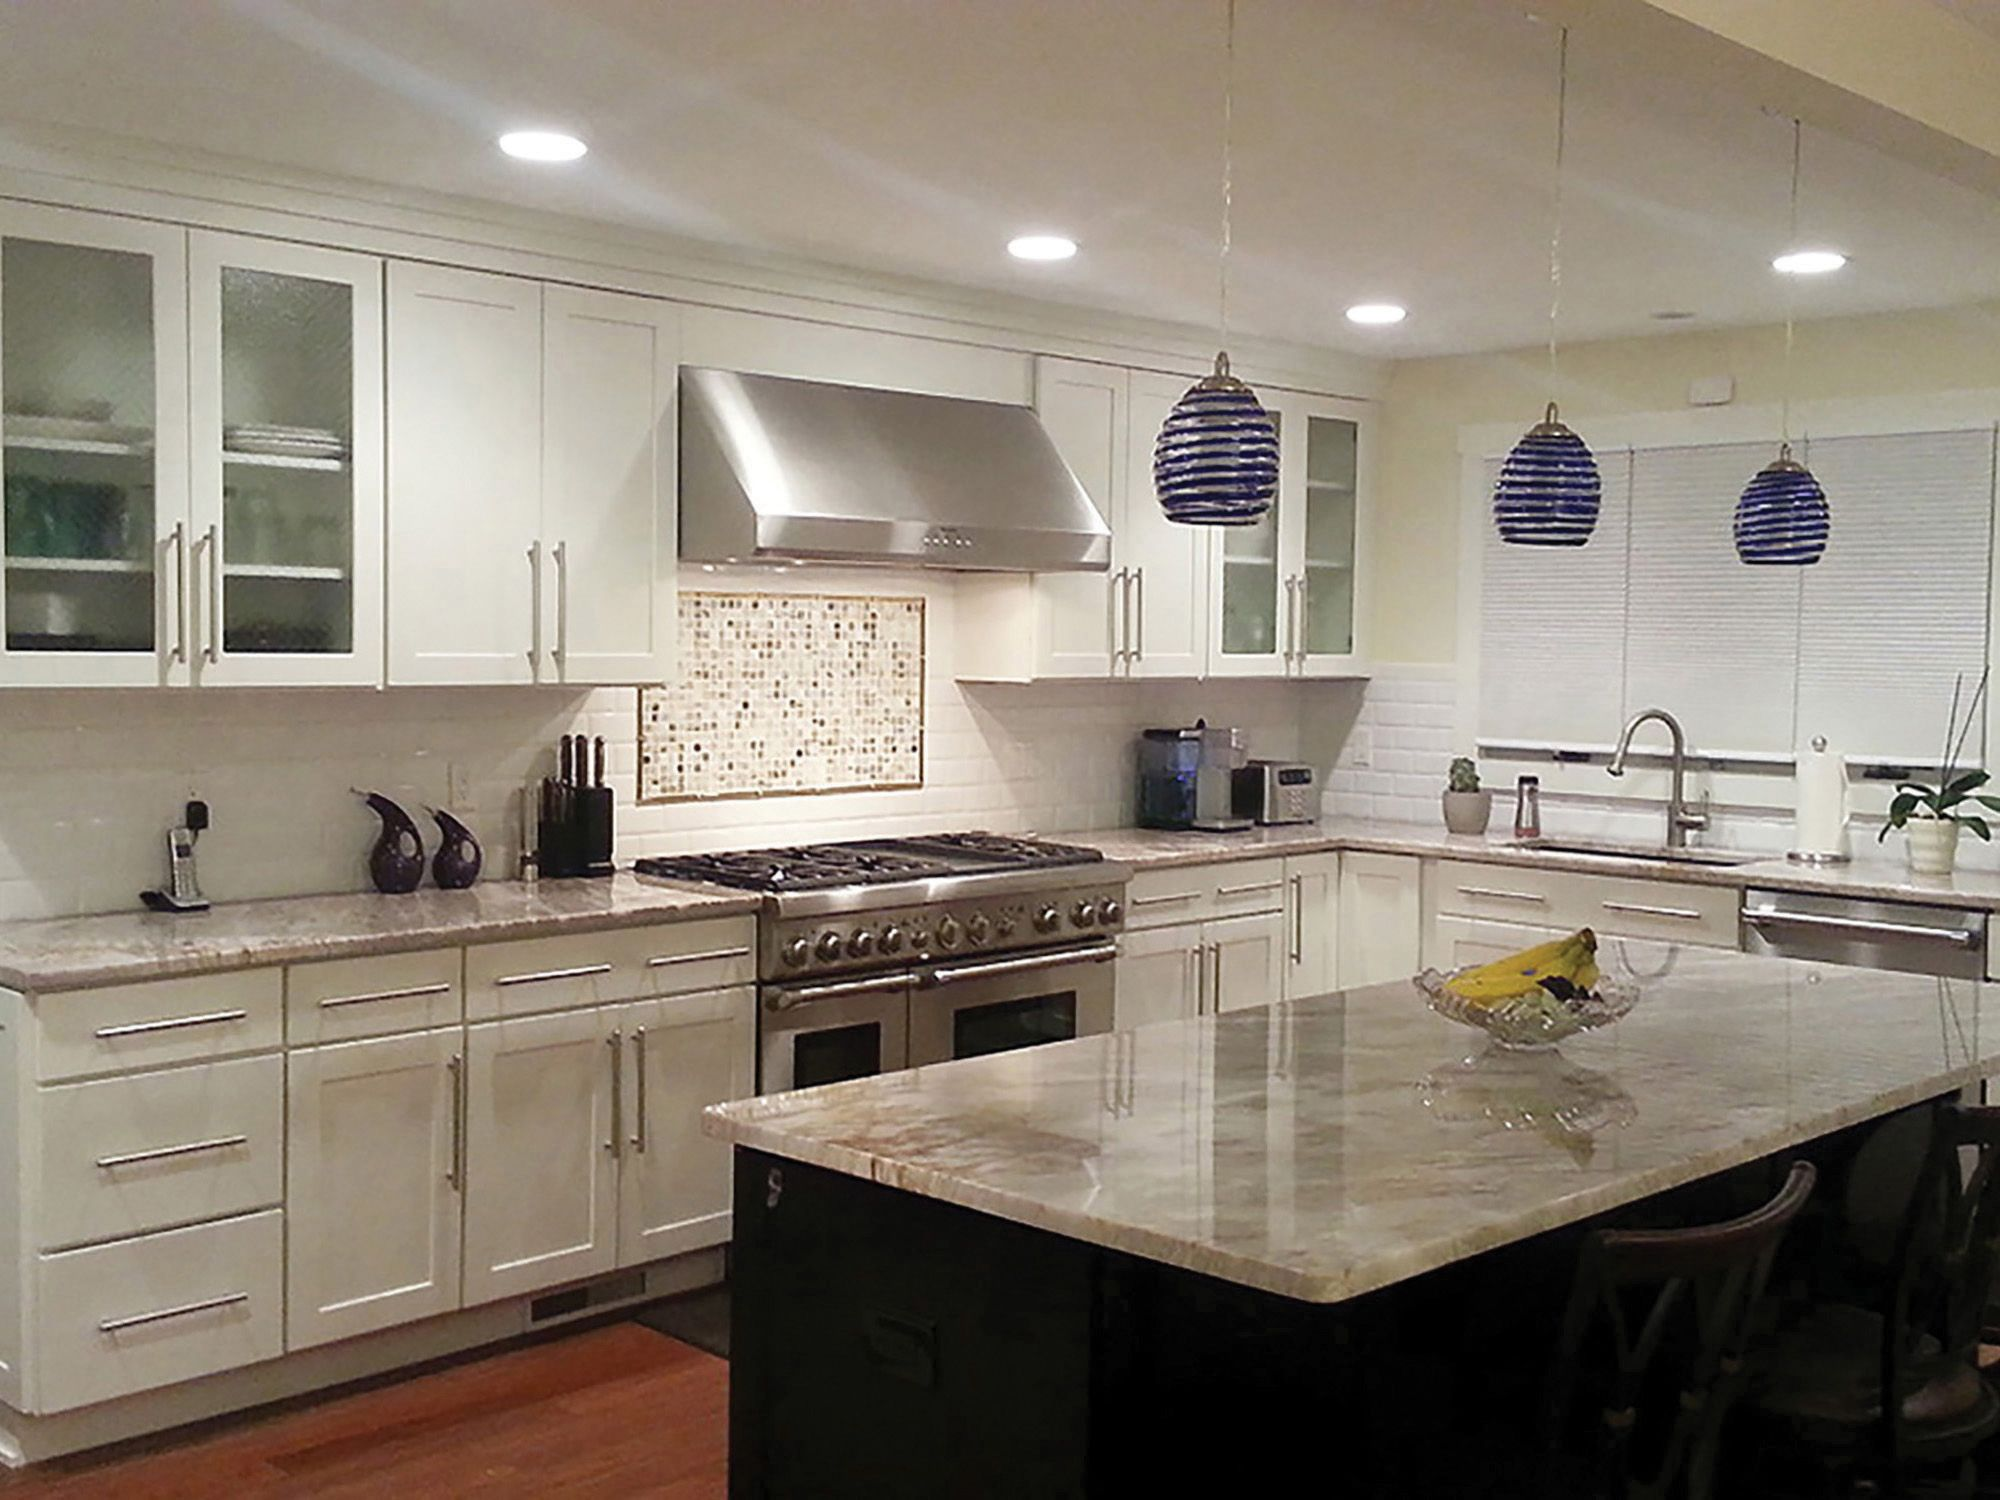 Trumbull Connecticut Kitchen Renovation Features Cliqstudios Custom Painted Cabinets